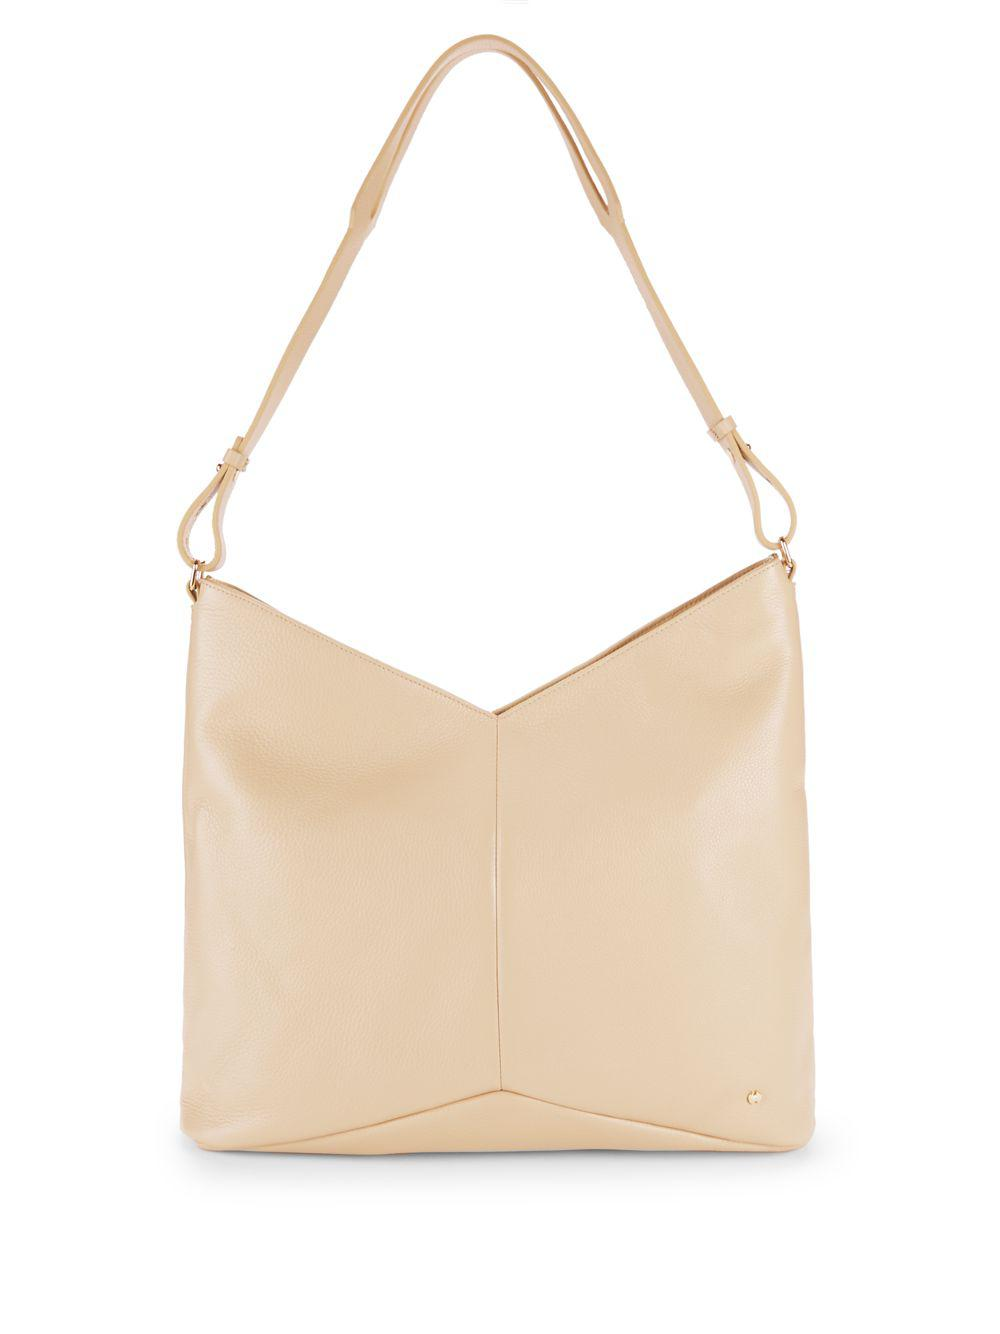 Halston Heritage Chevron Leather Tote Bag in Natural - Lyst e41b9cac884ba